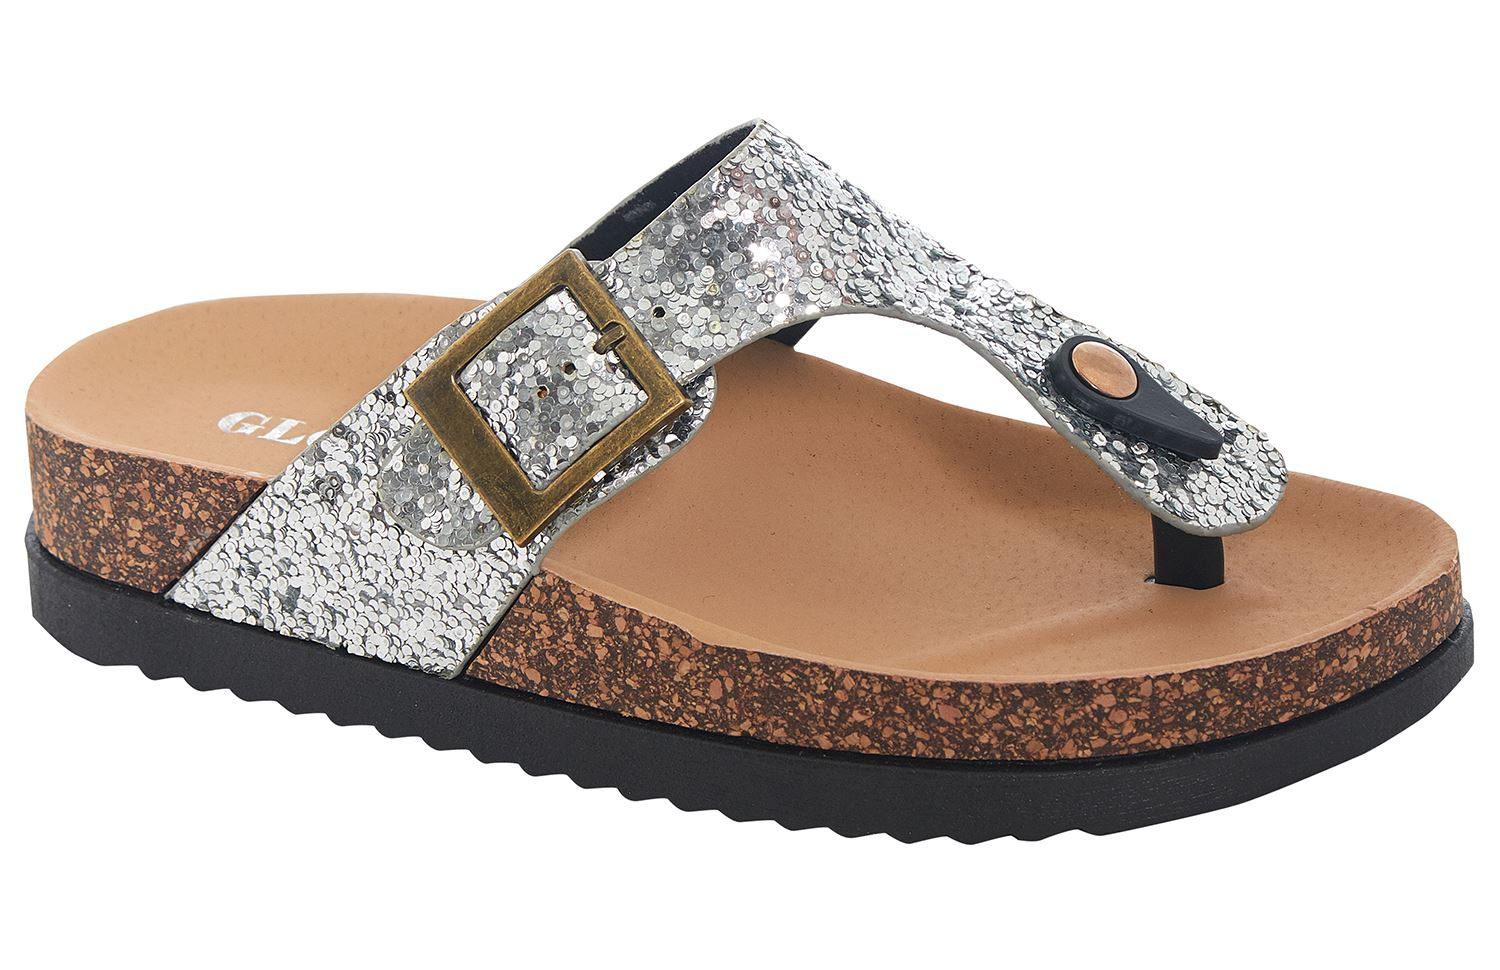 464af8ad4 Ladies Womens T Bar Cork Wedge Black Flip Flops Sequin Summer Beach ...